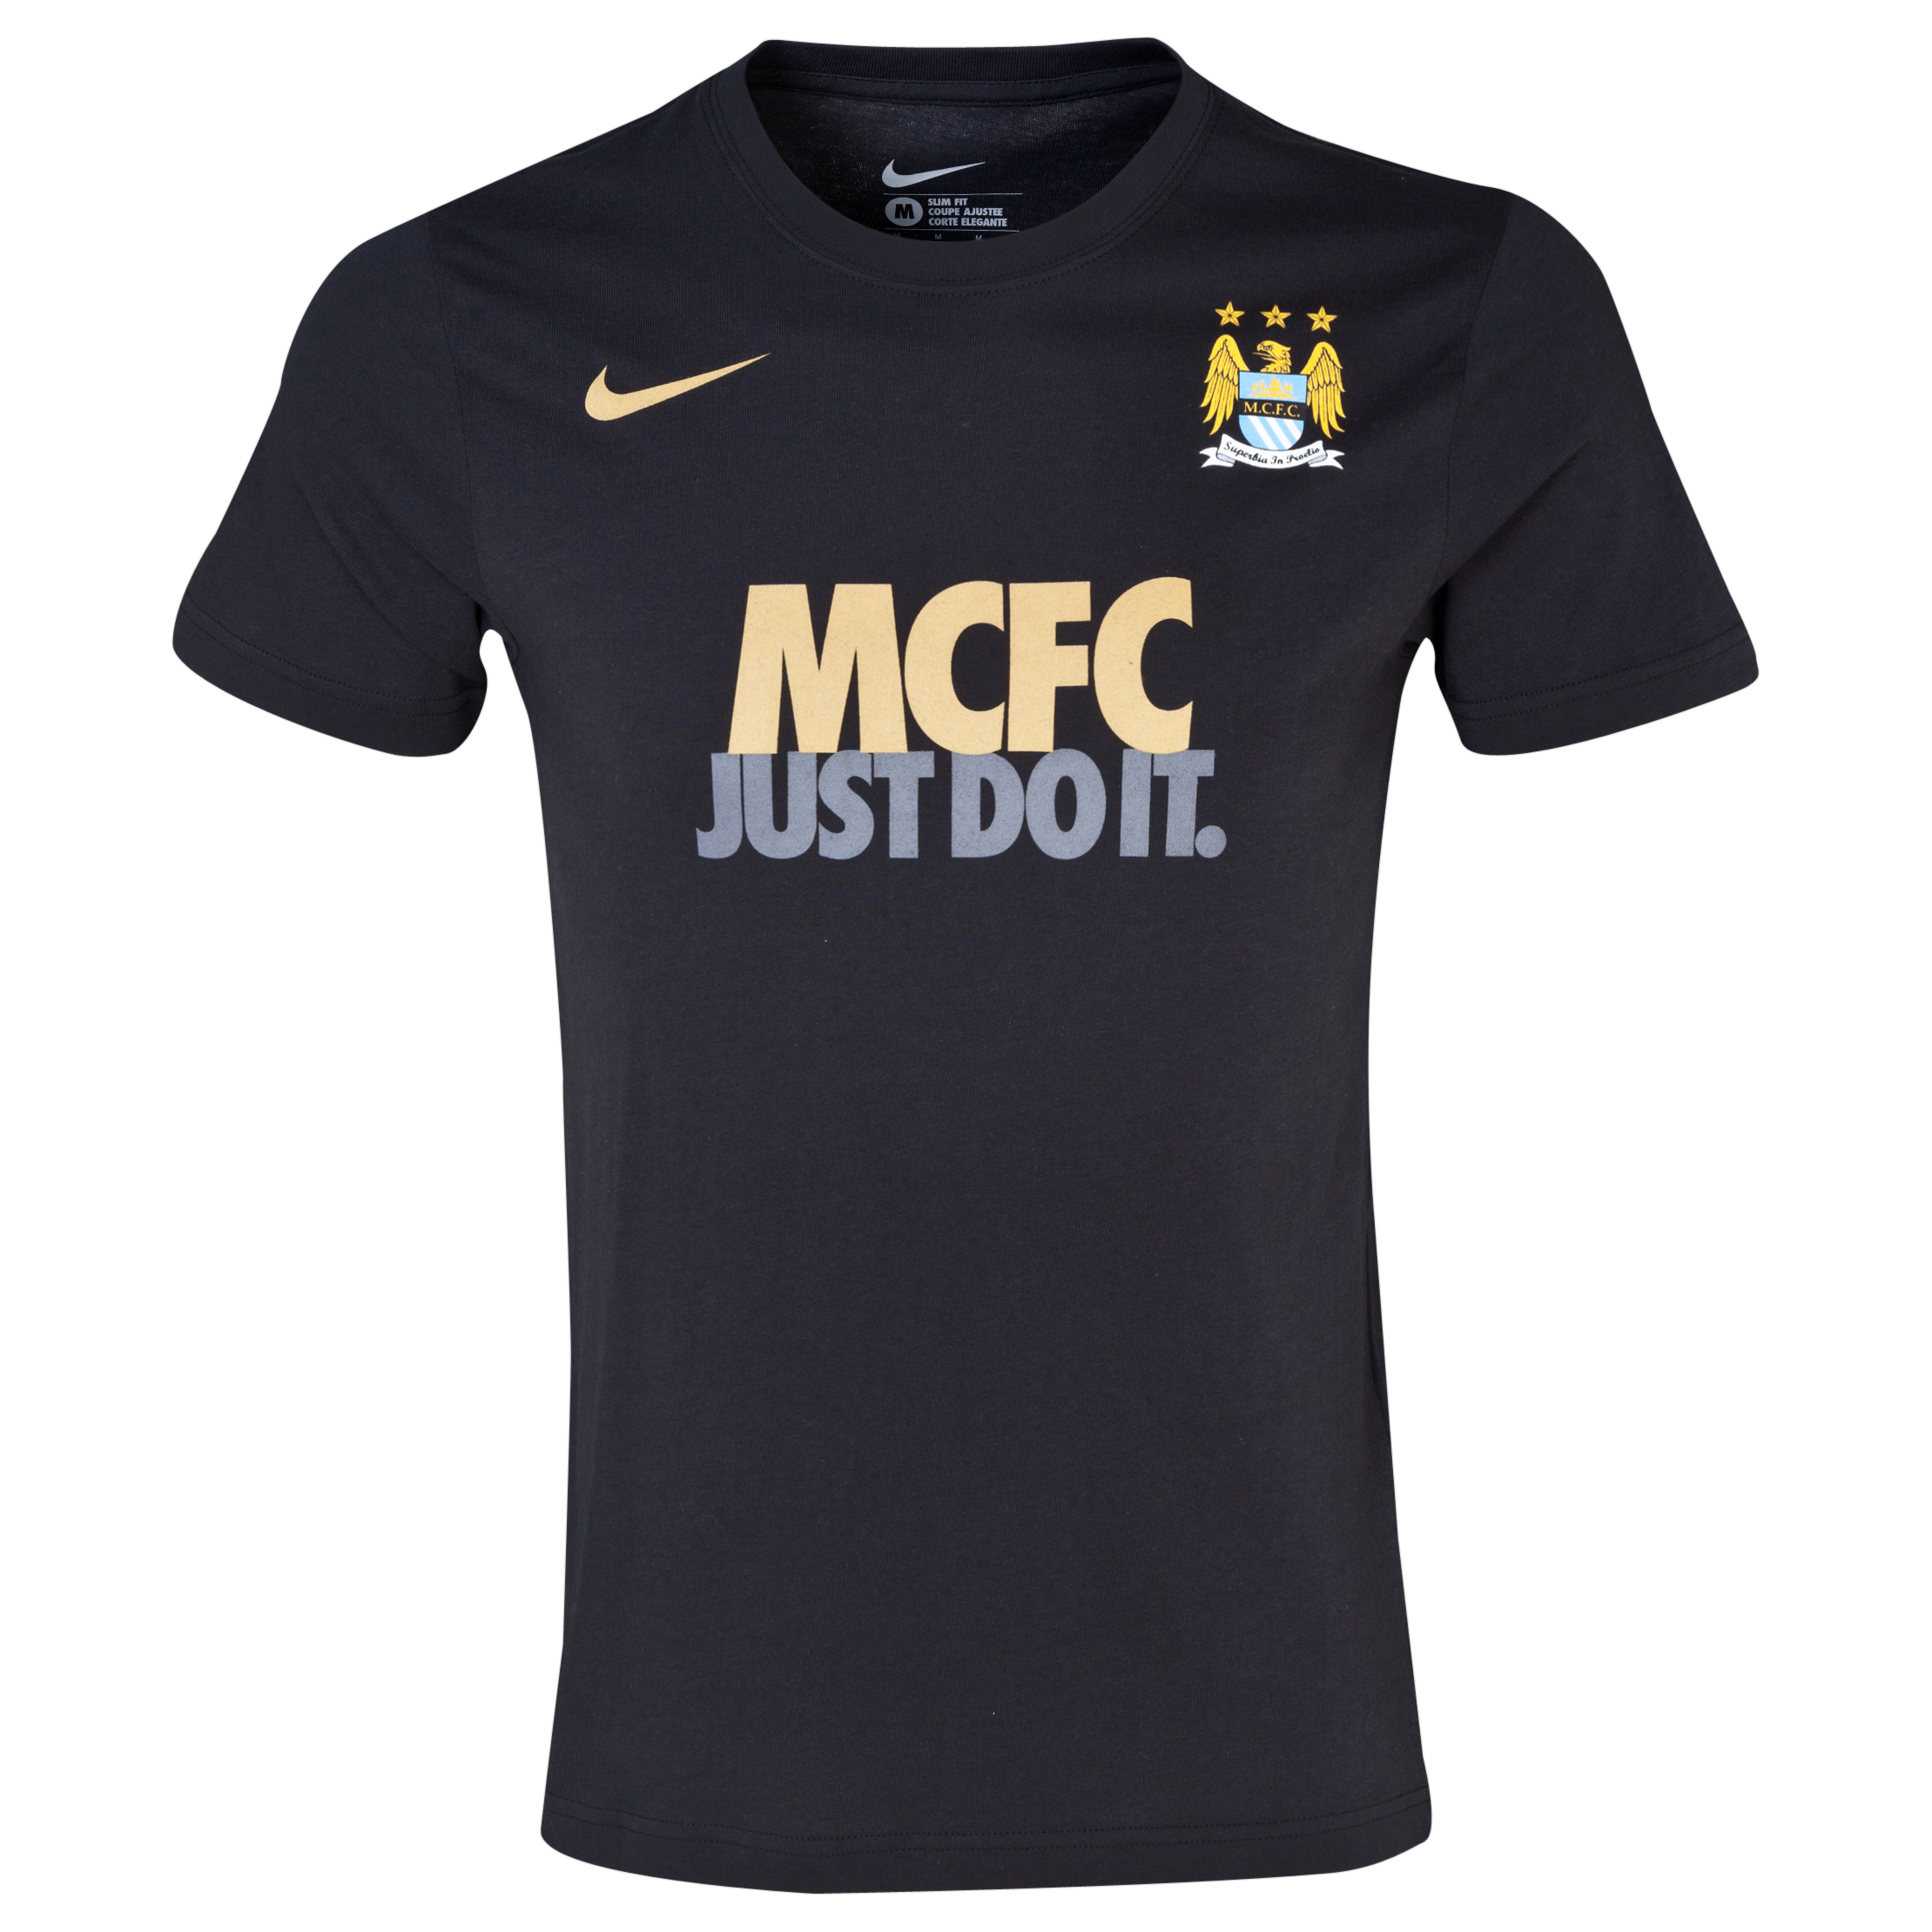 Manchester City Core Just Do It T-Shirt - Mens Black